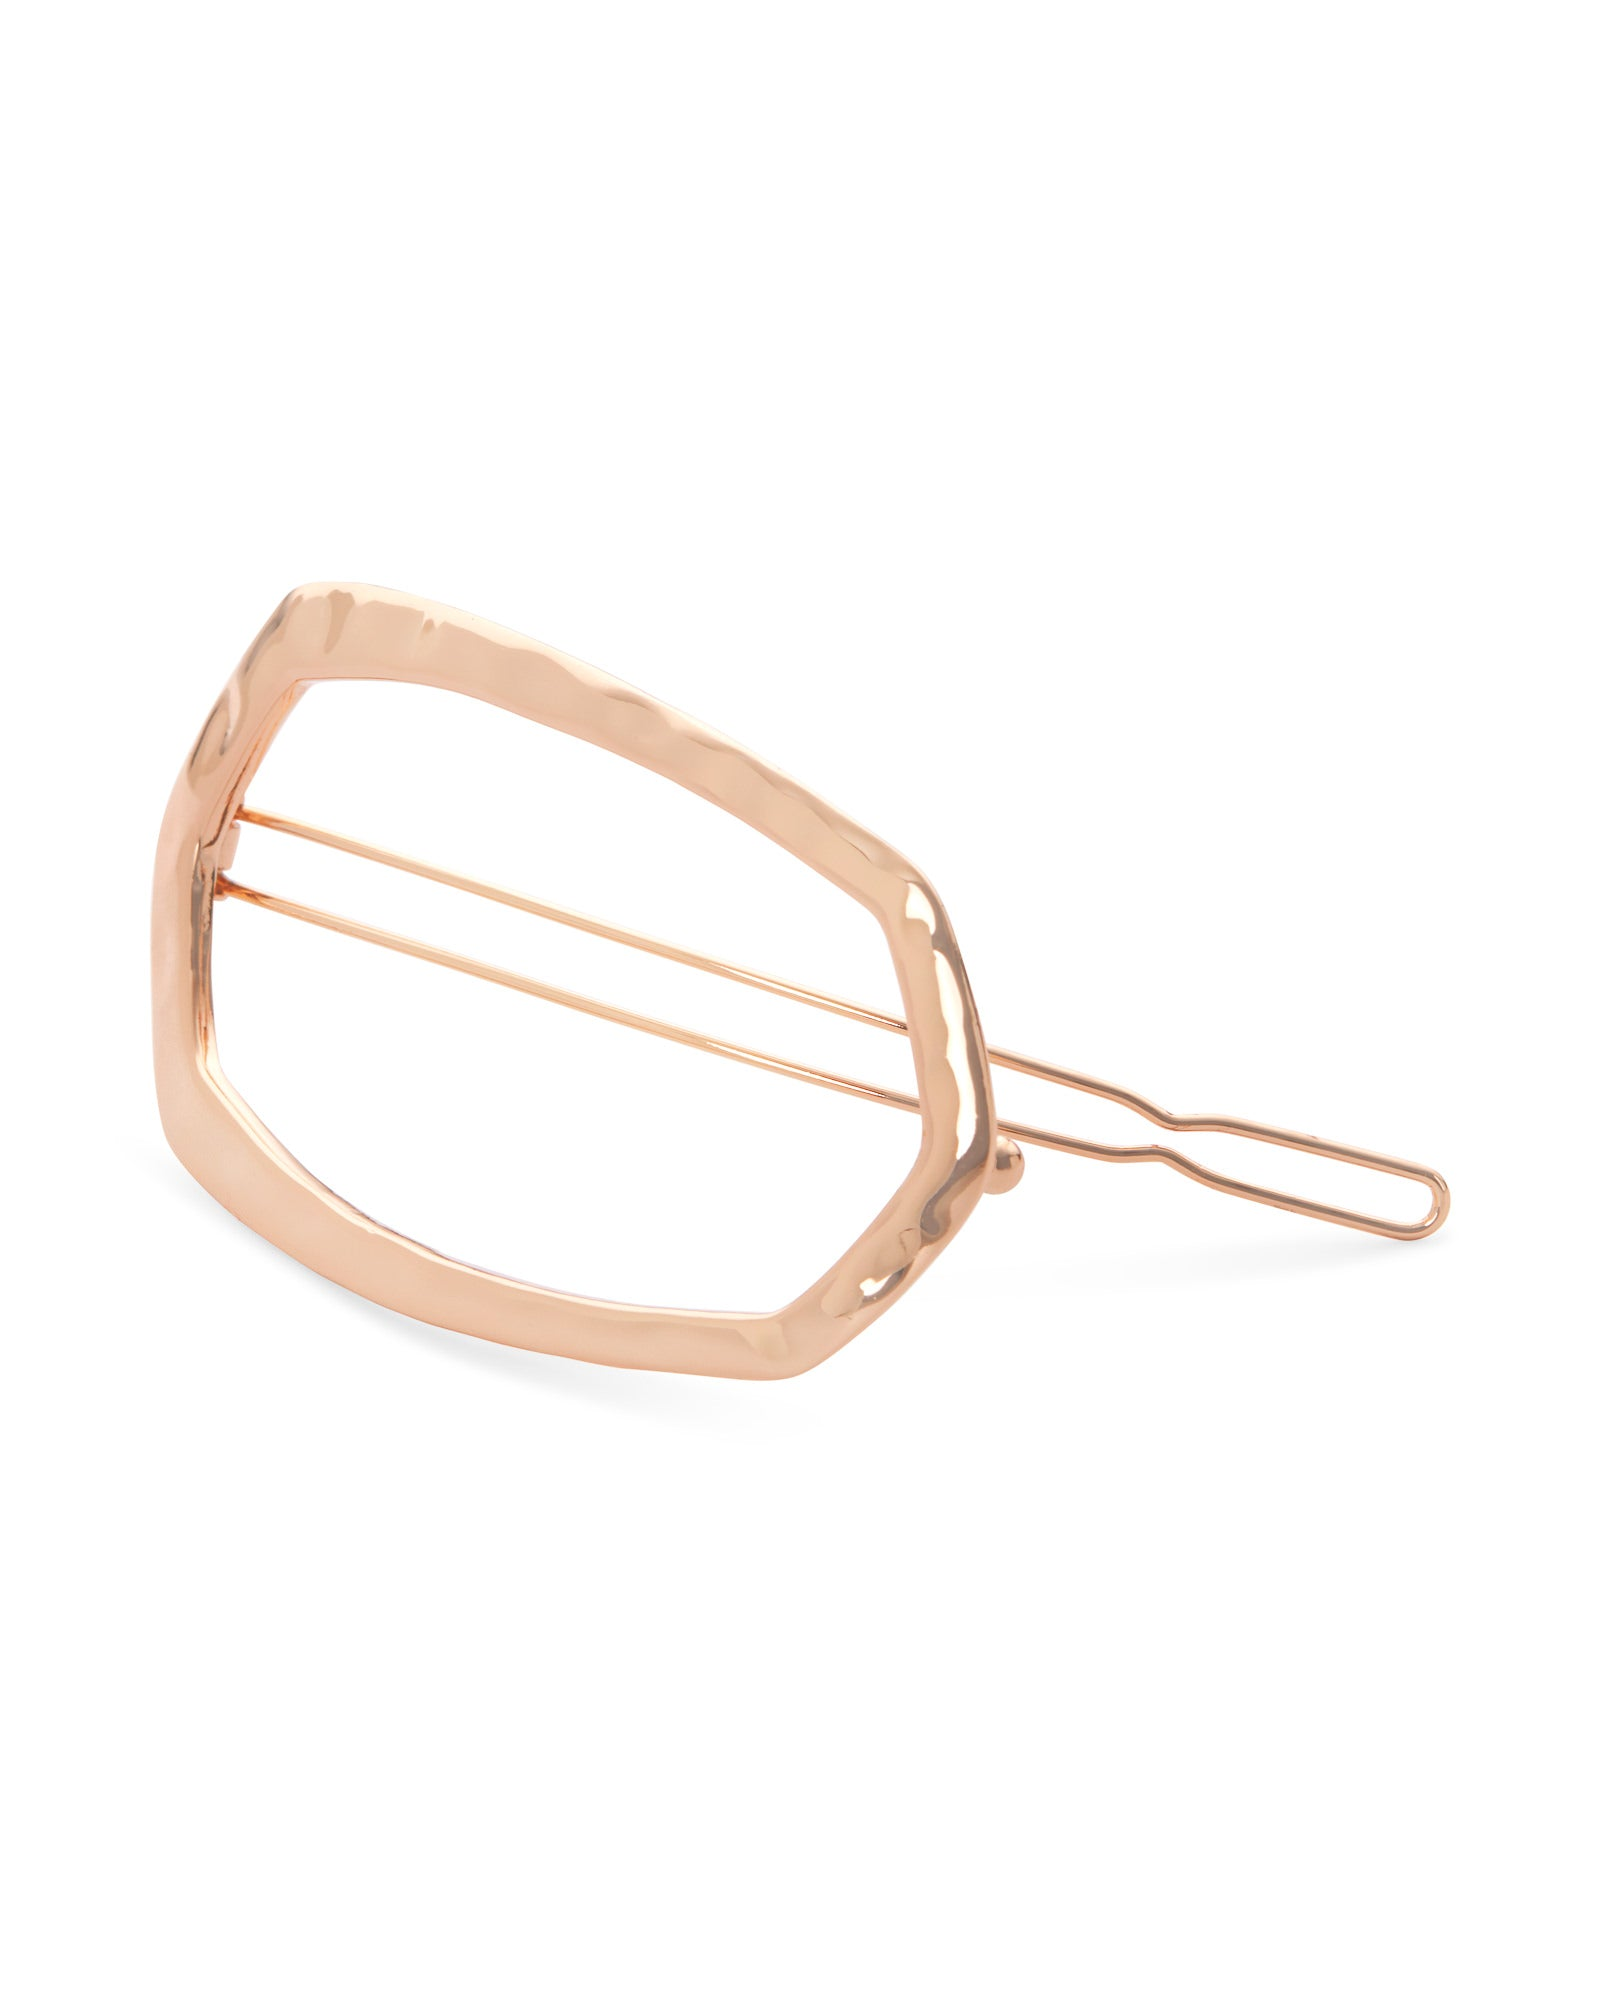 Zorte Small Hair Clip in Rose Gold